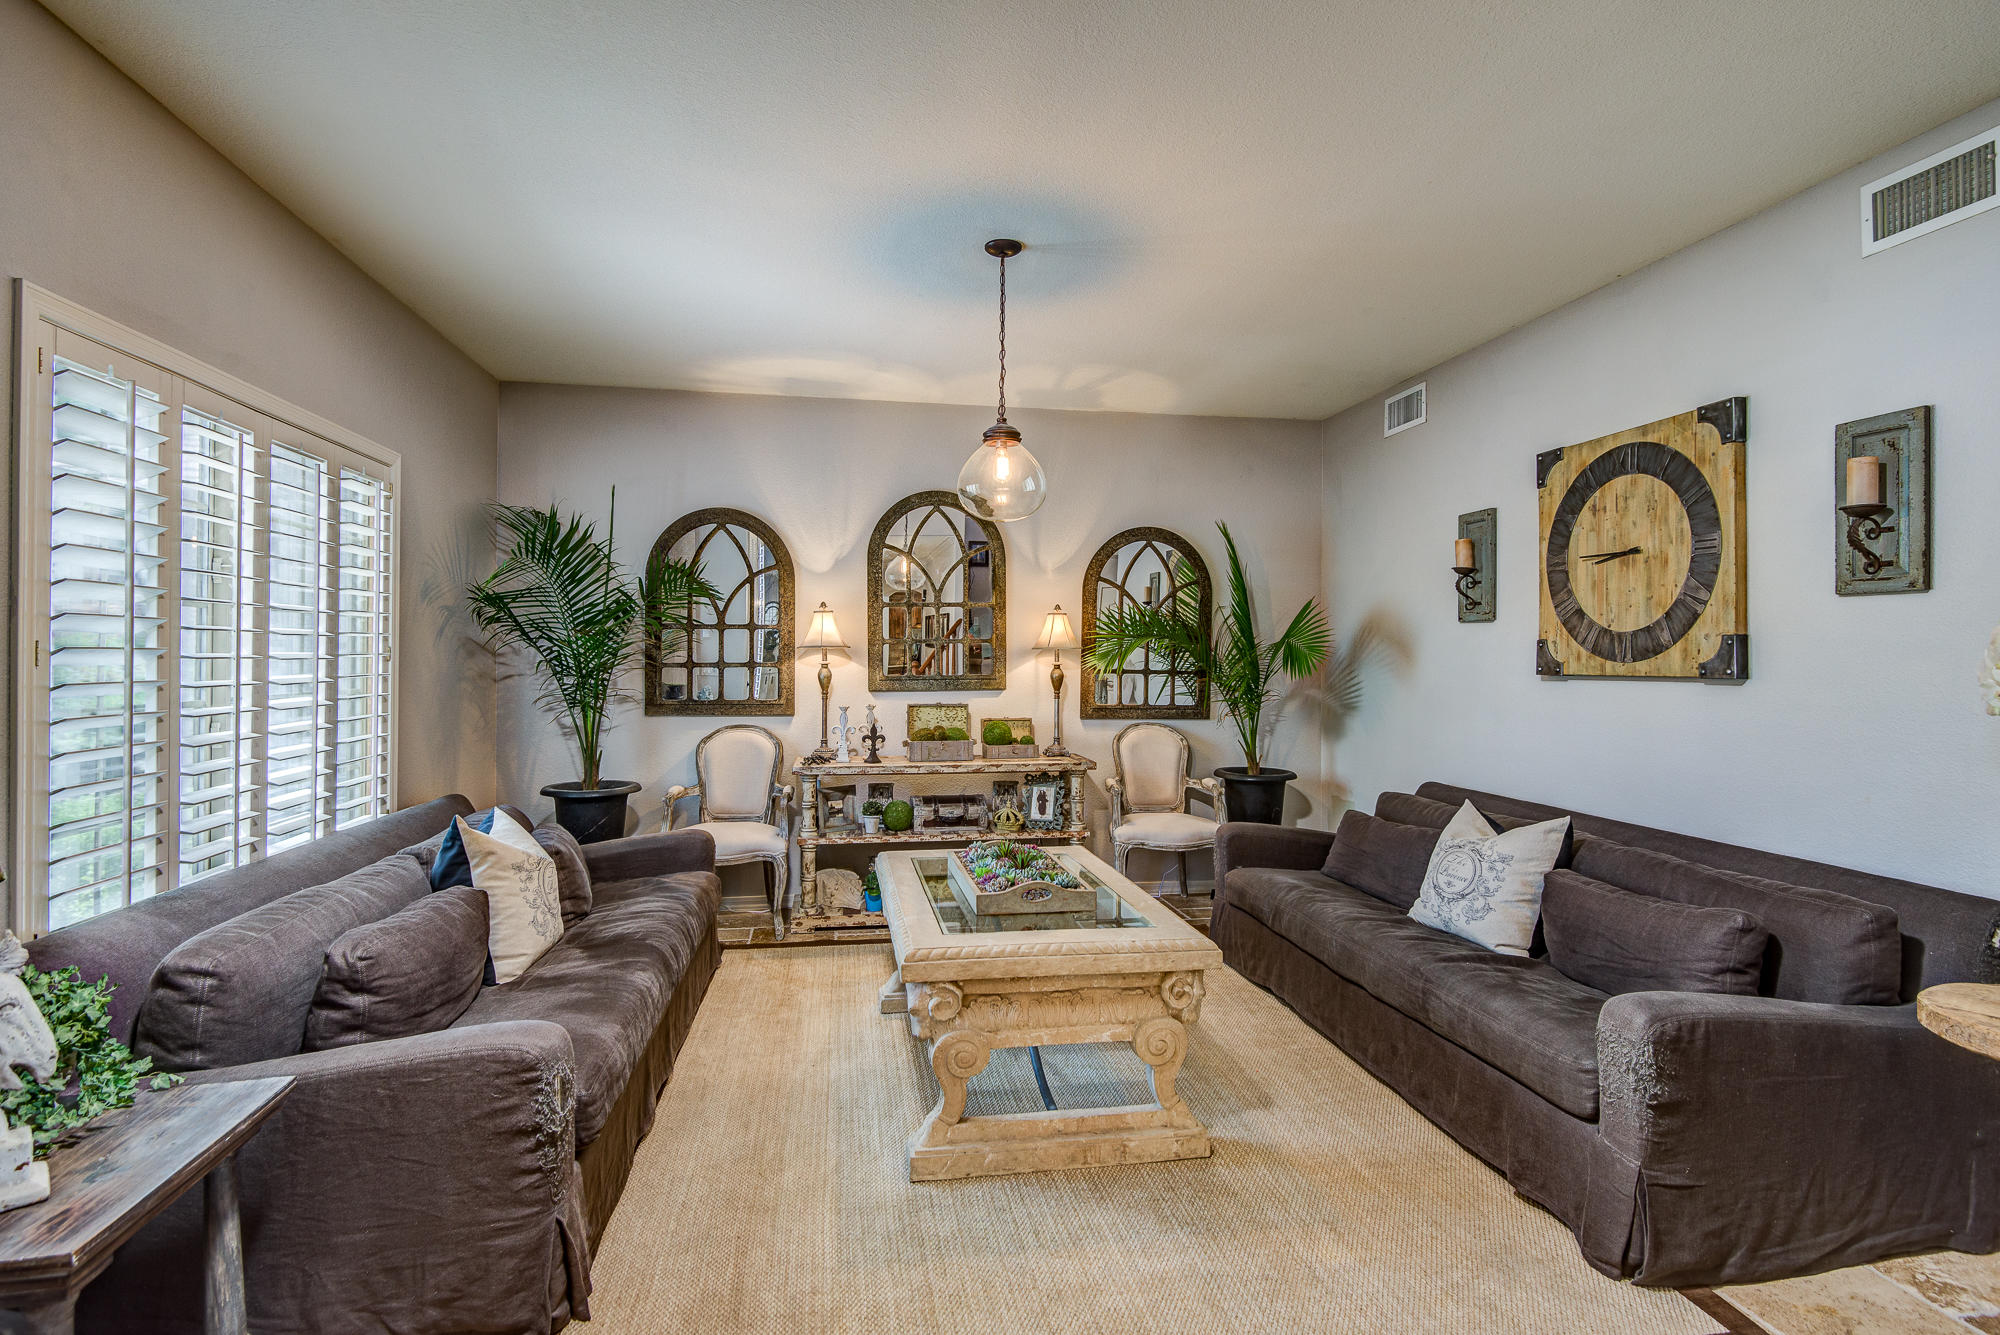 lighting a room. Layered Lighting Is A Great Way To Add Depth And Make Room Feel More Luxurious! Luxury Equals Better Perceived Value! So, If Your Home Listed For Sale